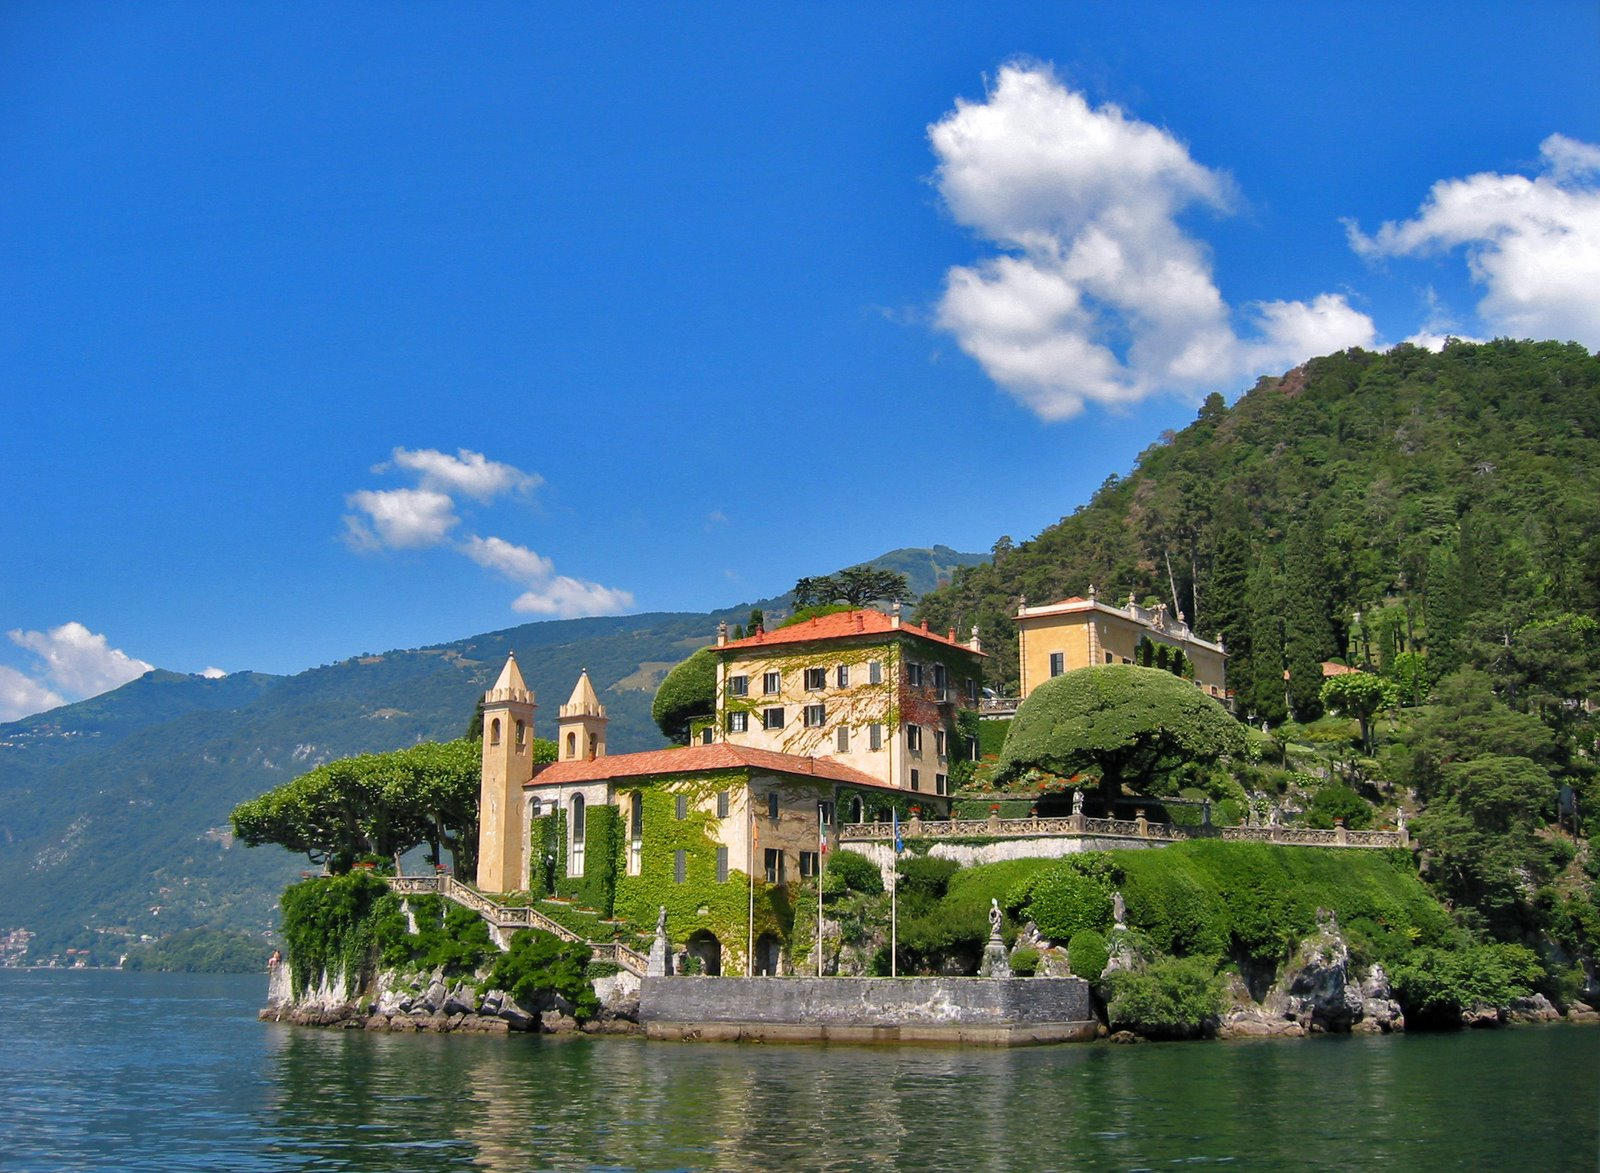 italy villa balbianello coast - photo #2